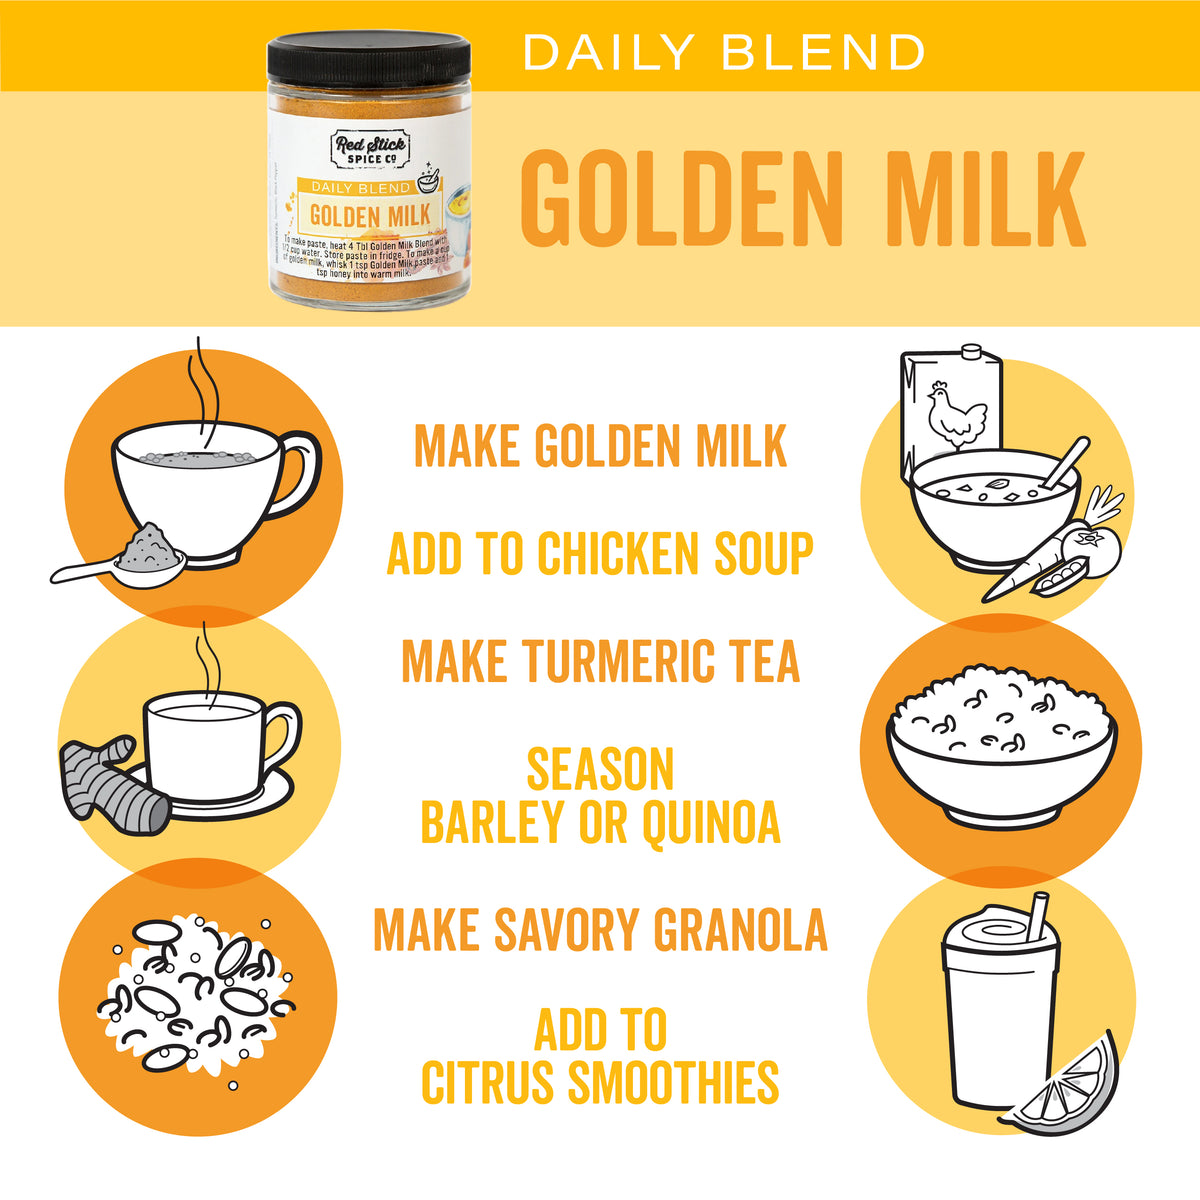 Golden Milk Daily Blend